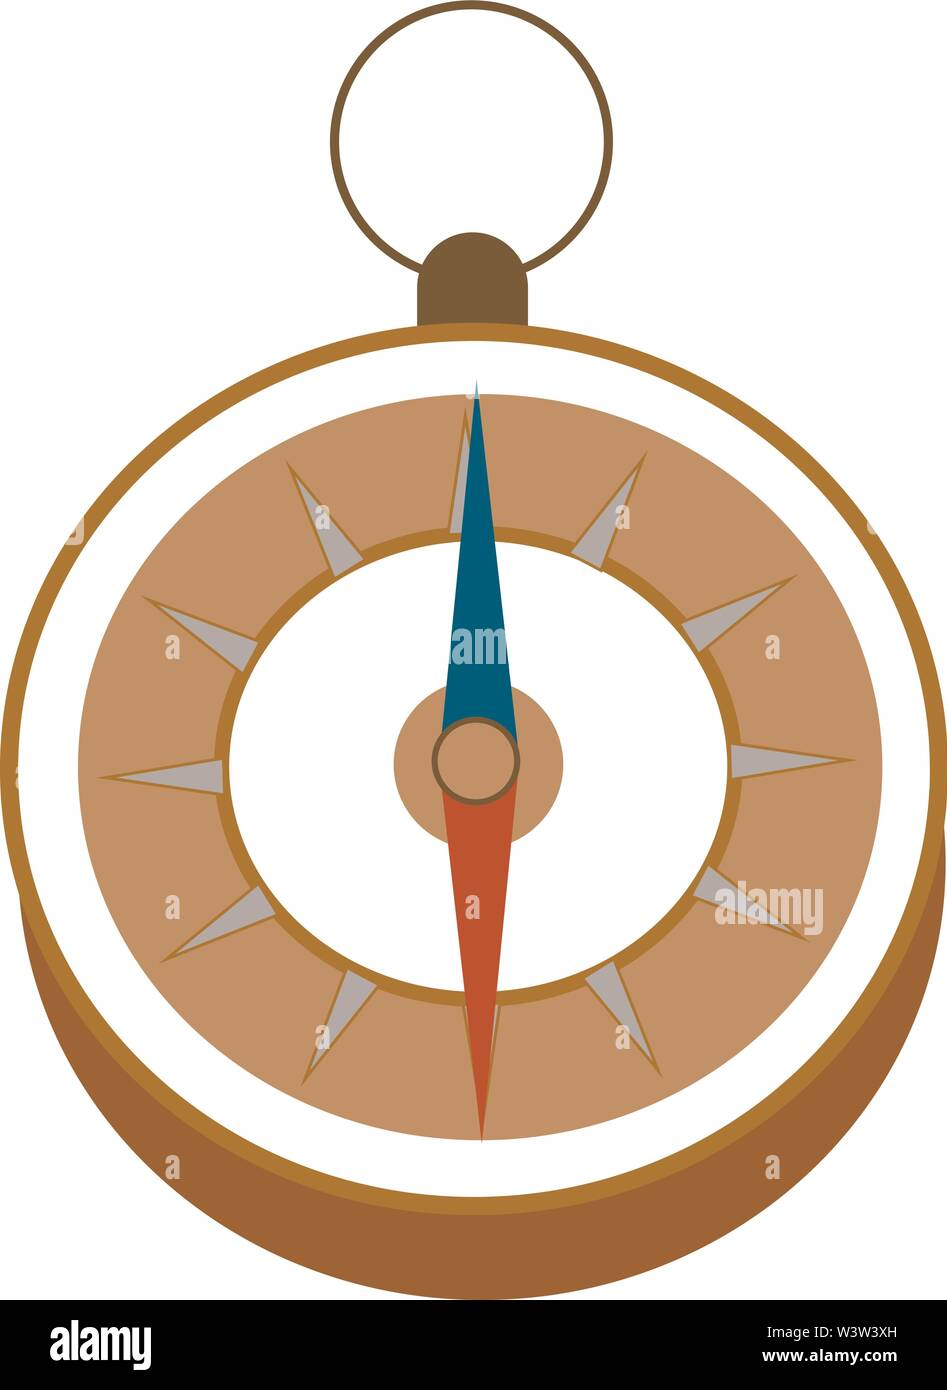 Compass with handle, illustration, vector on white background. - Stock Vector